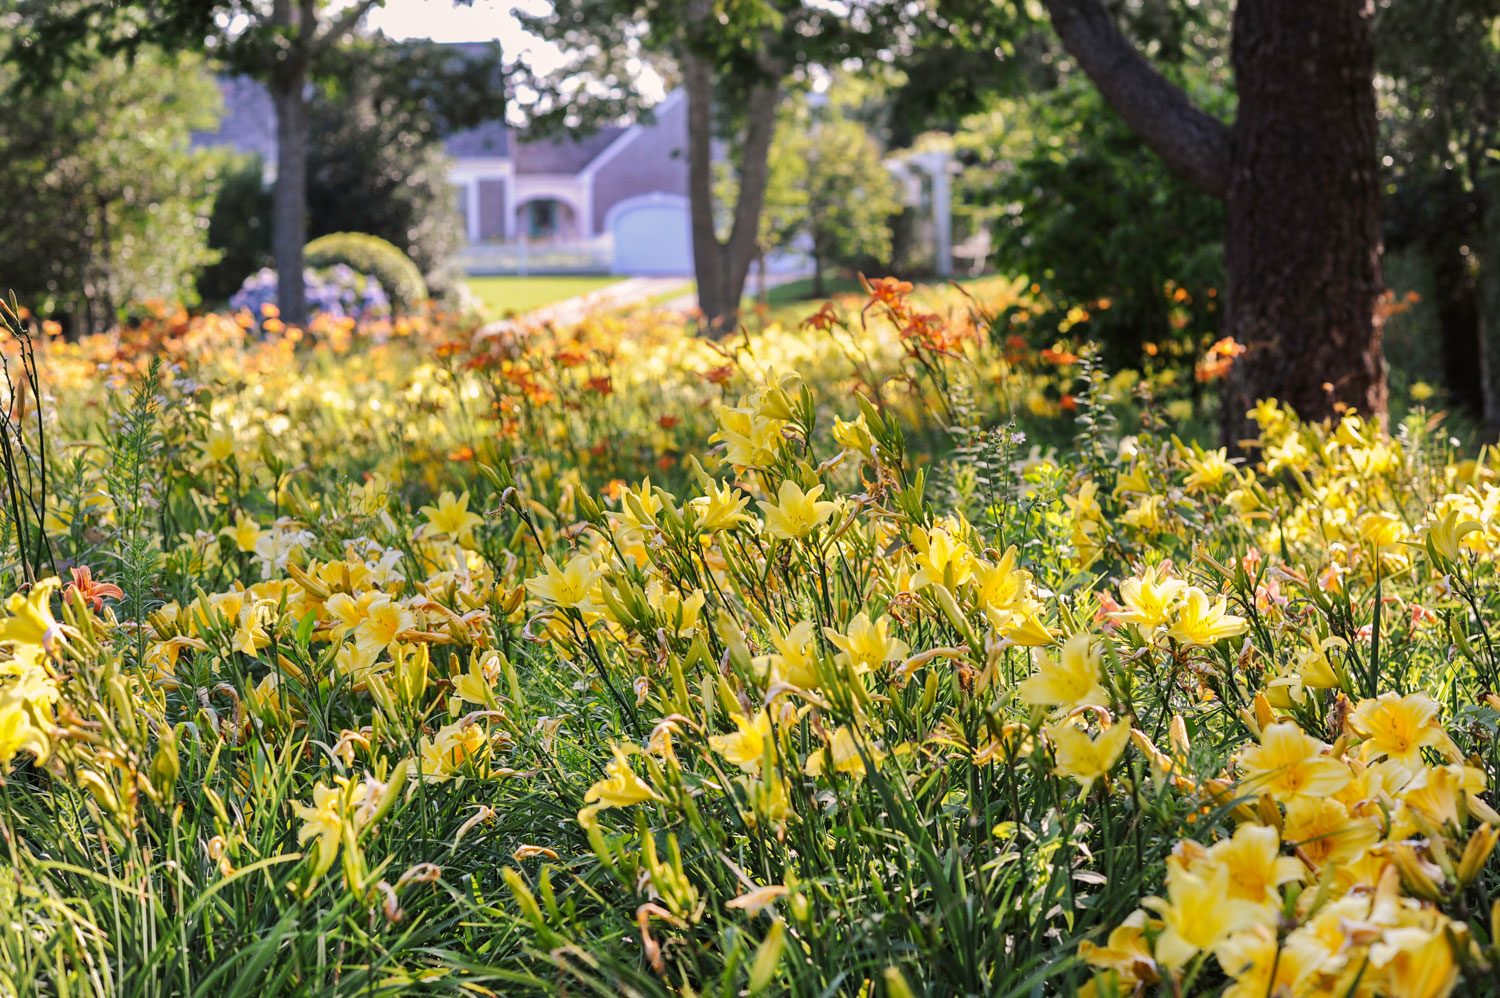 This lily field was used as part of a sustainable landscape on Cape Cod, MA